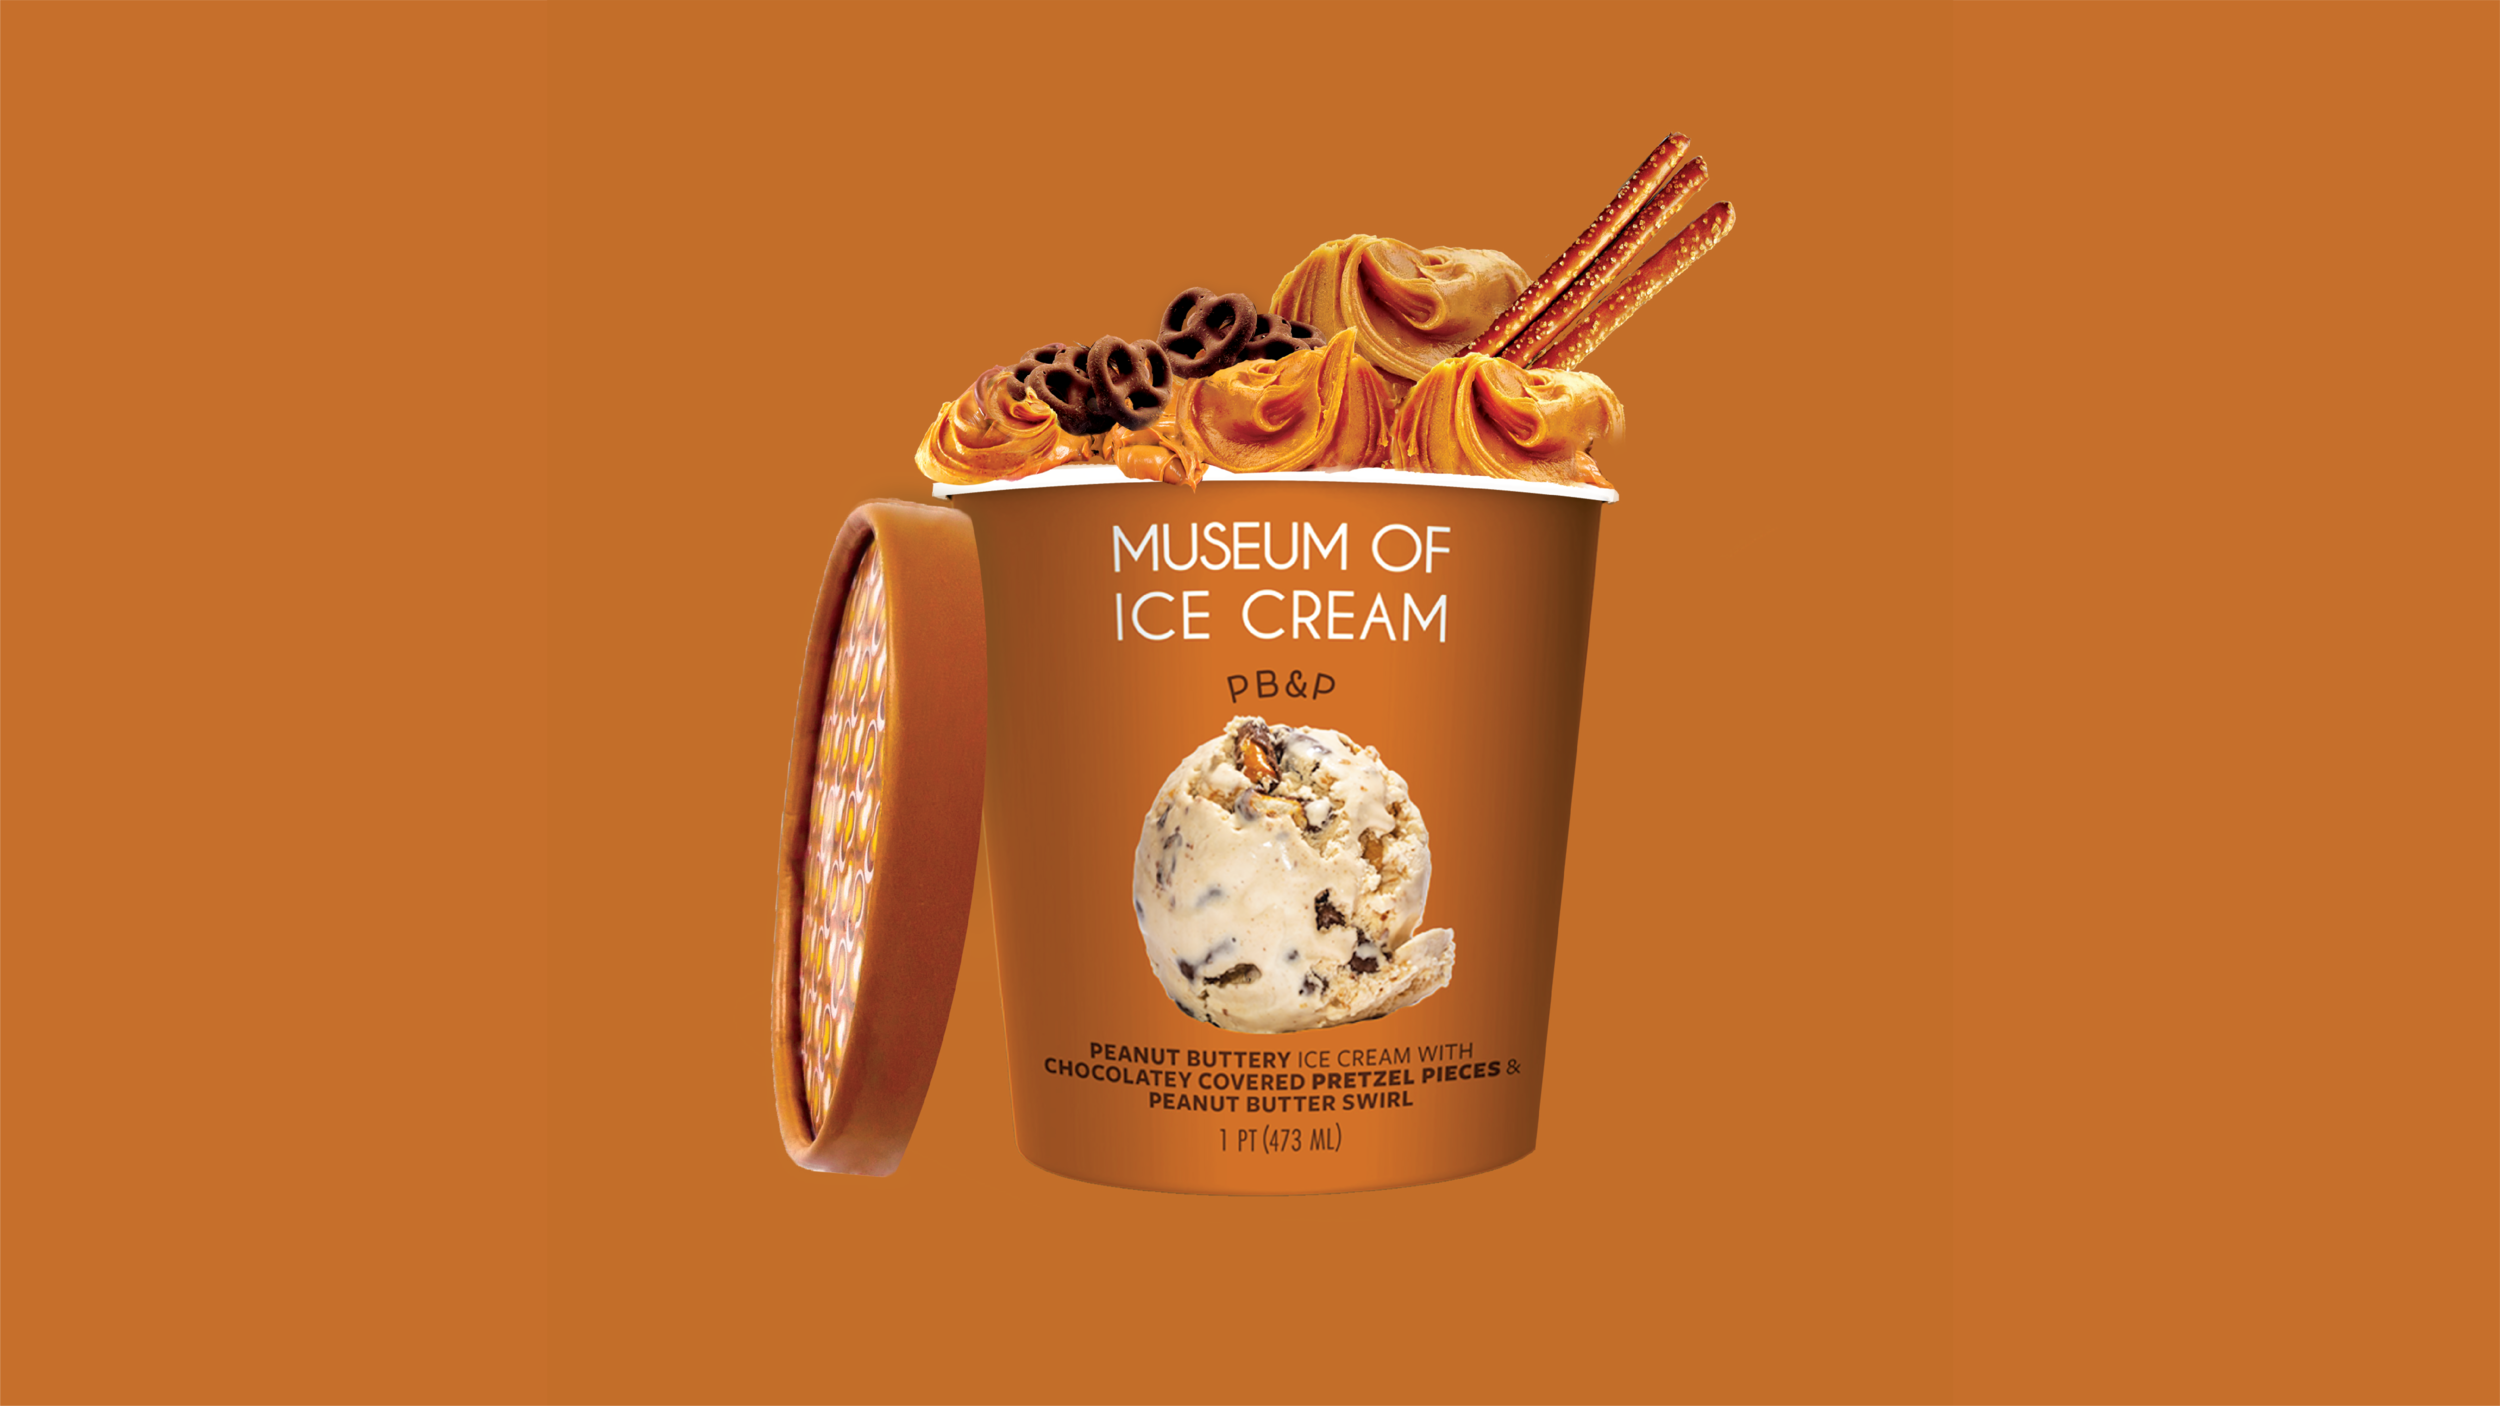 Museum-of-ice-cream_ice-cream_pb-&-p.png